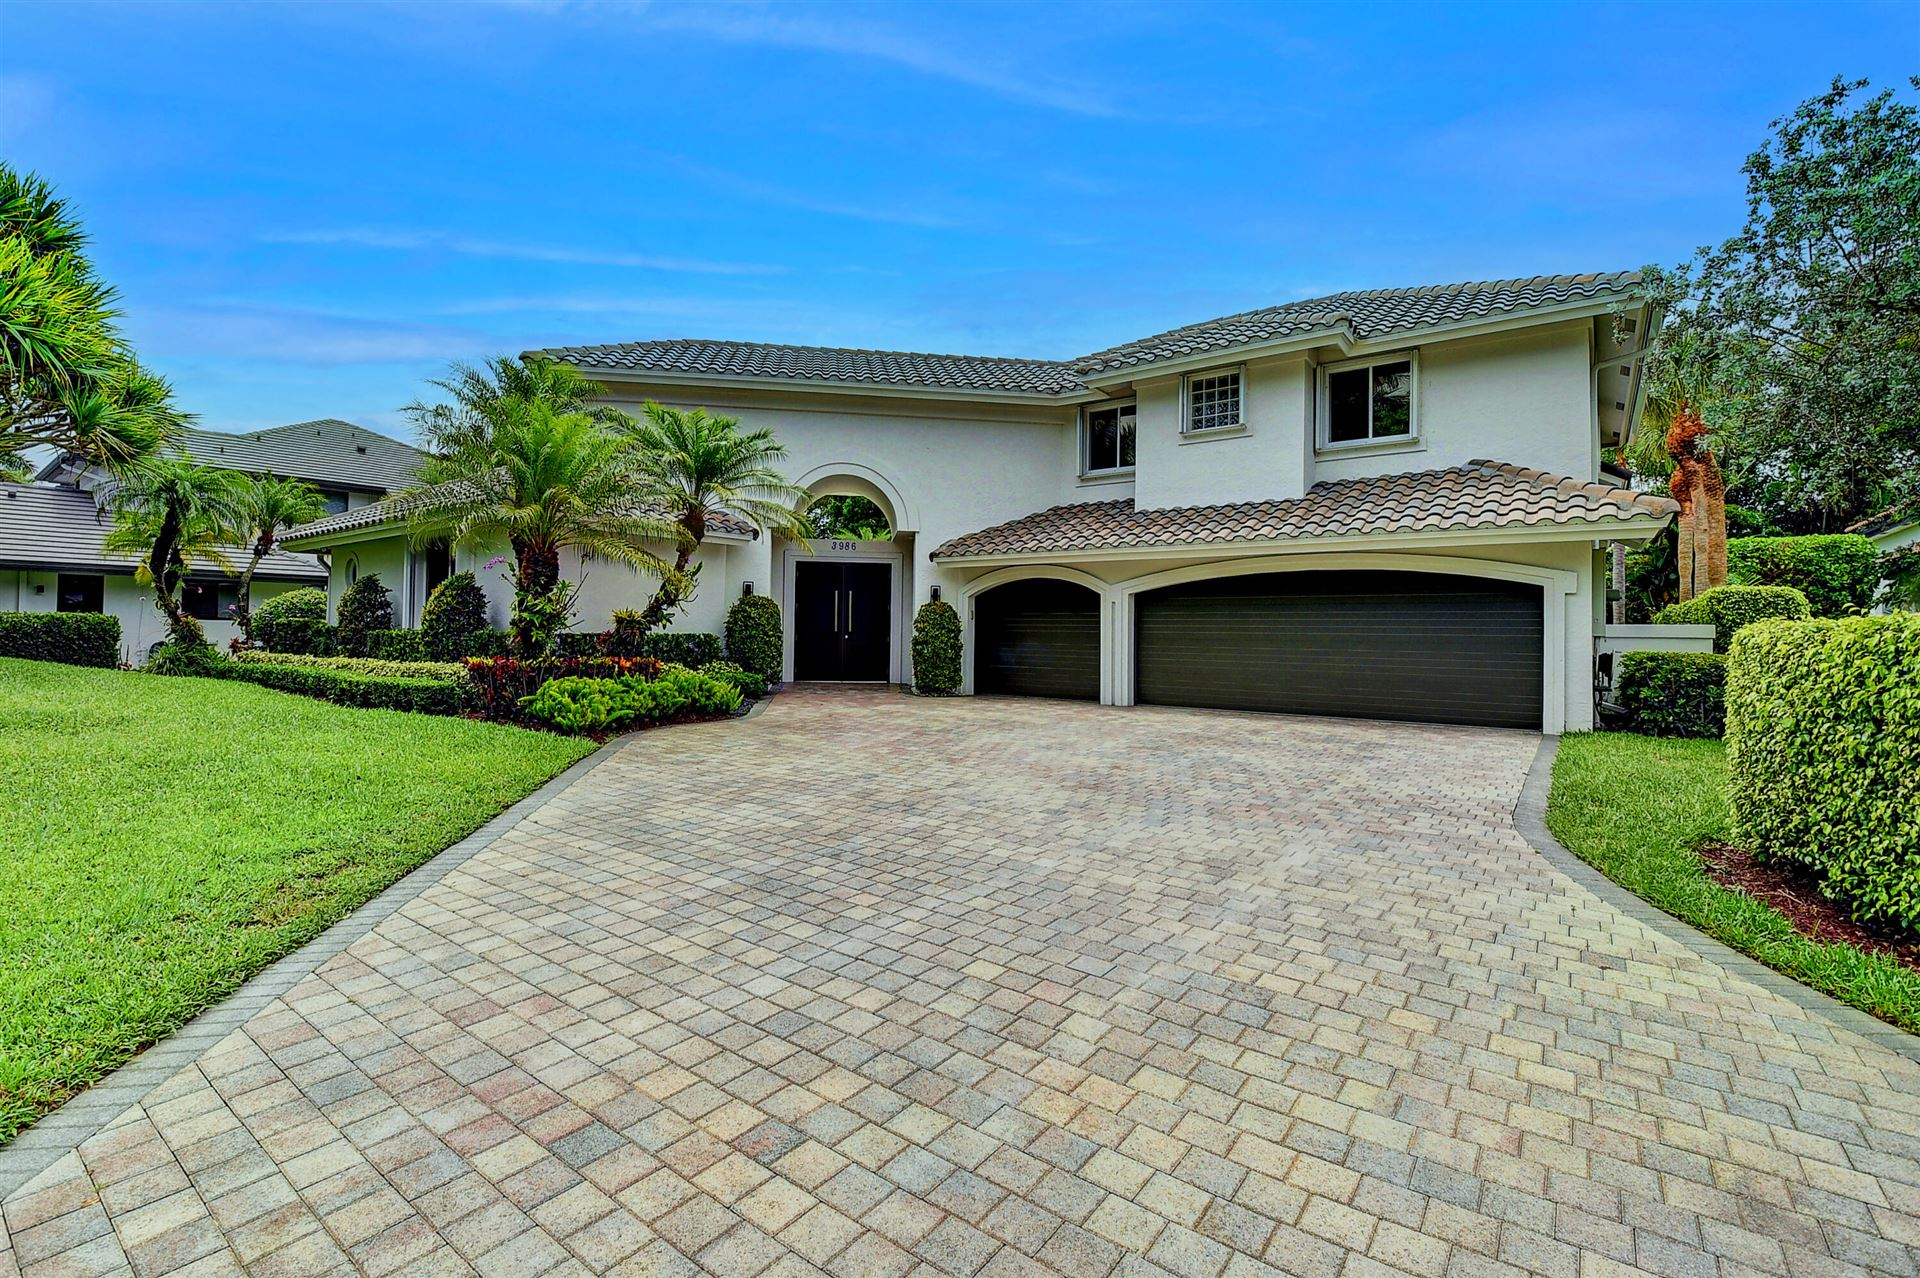 Photo of 3986 NW 52nd Place, Boca Raton, FL 33496 (MLS # RX-10724793)